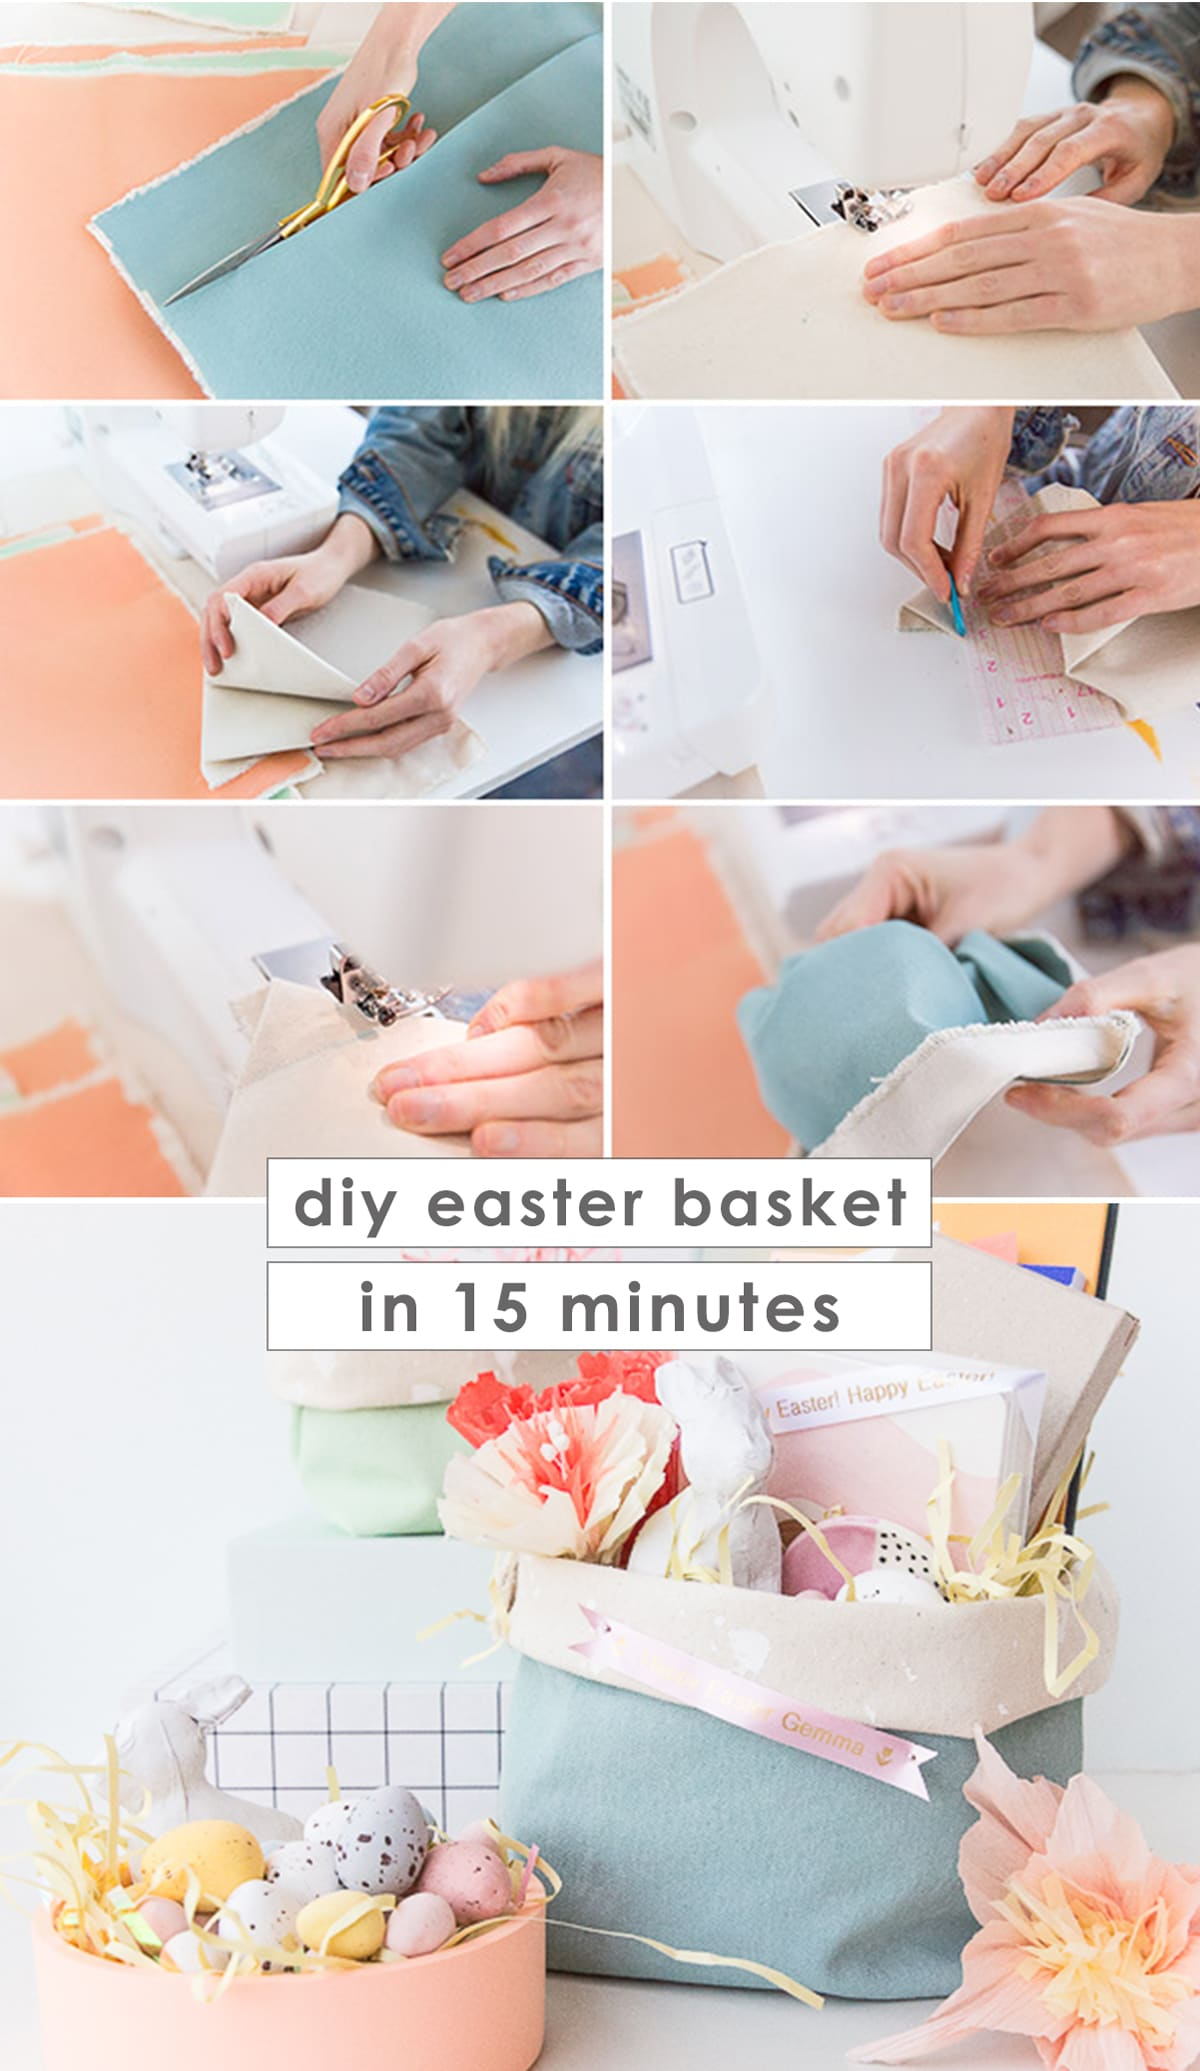 Step by step photos that show how to make a DIY Easter basket with canvas.